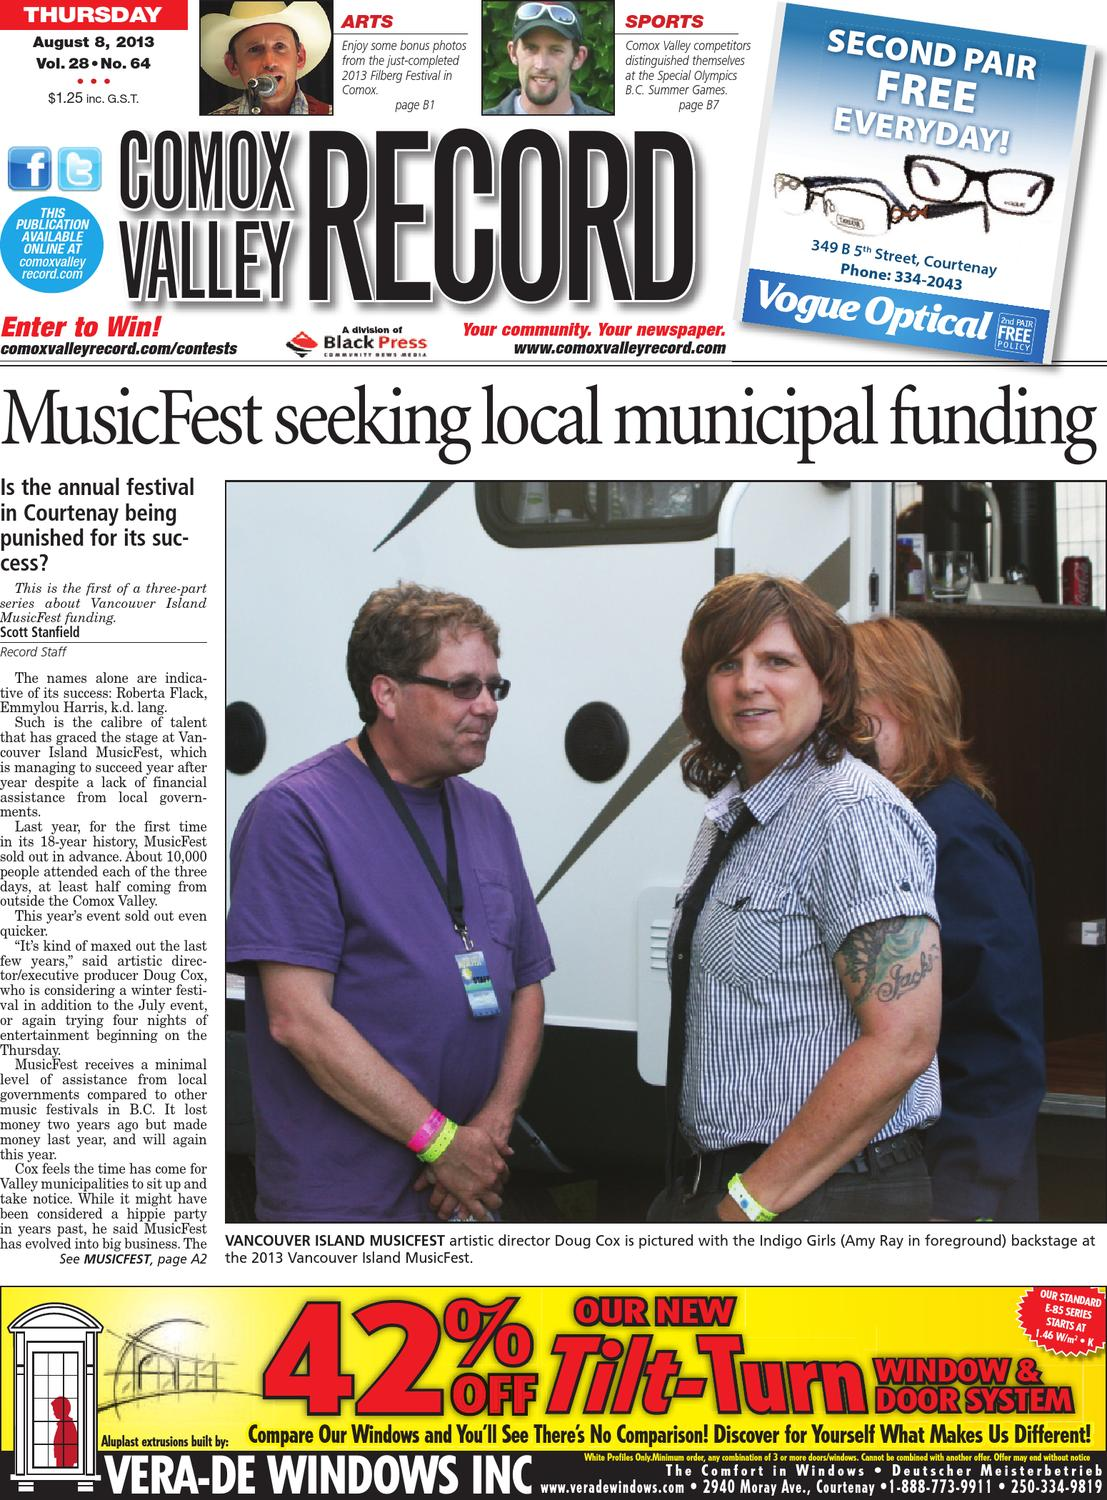 Comox Valley Record August 08 2013 By Black Press Issuu Calculatorfreeledcalculadora Xtronic Free Electronic Circuits